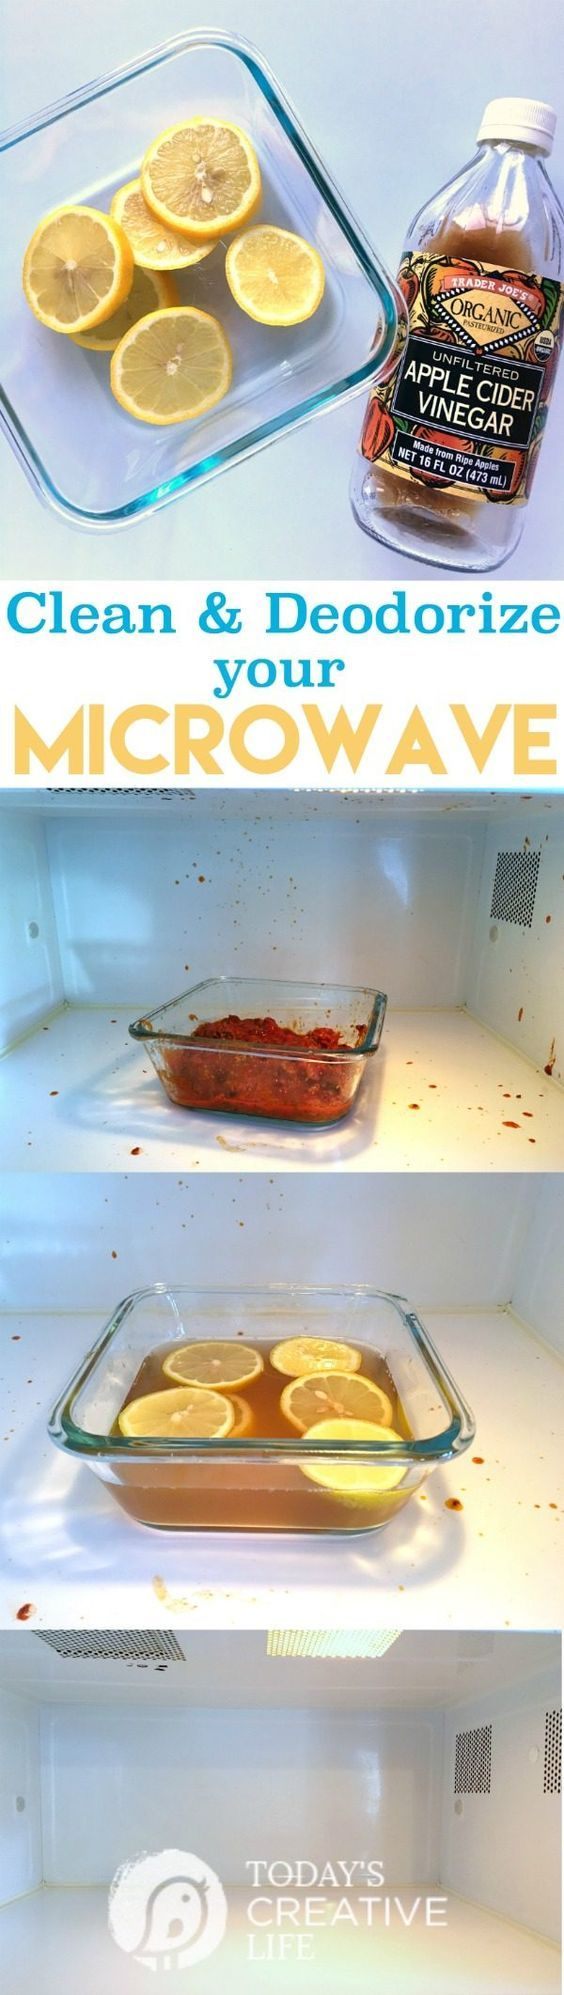 How to Clean and Deodorize A Microwave | This cleaning method is non-toxic using ACV, lemons and water. Let the steam do the work! See more tips on TodaysCreativeLif...